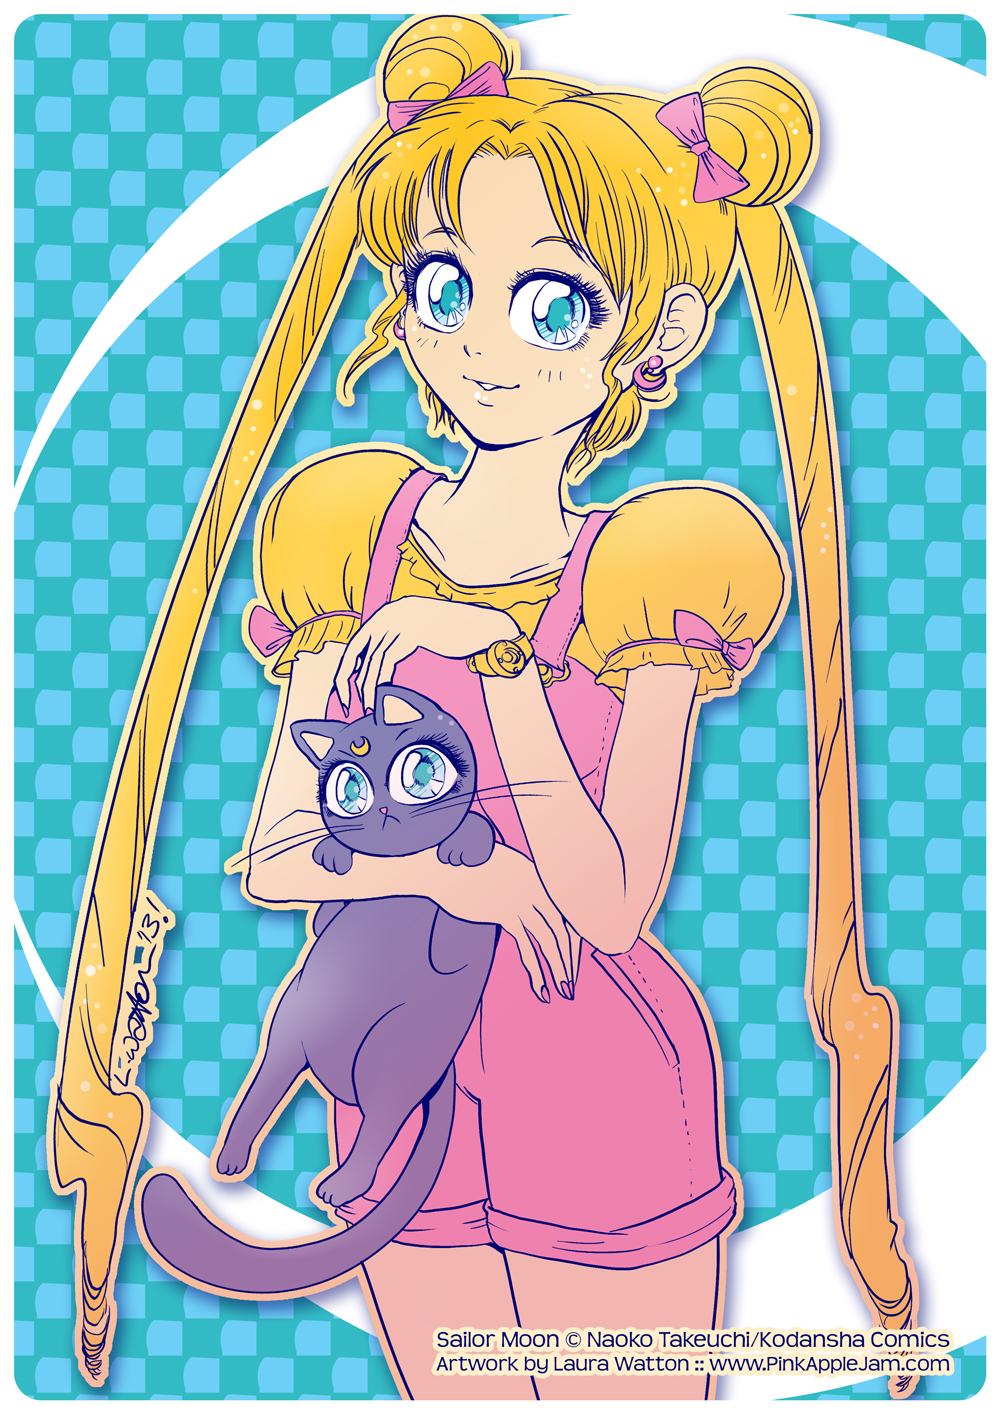 sailormoon_usagi2013_pinkapplejam.jpg